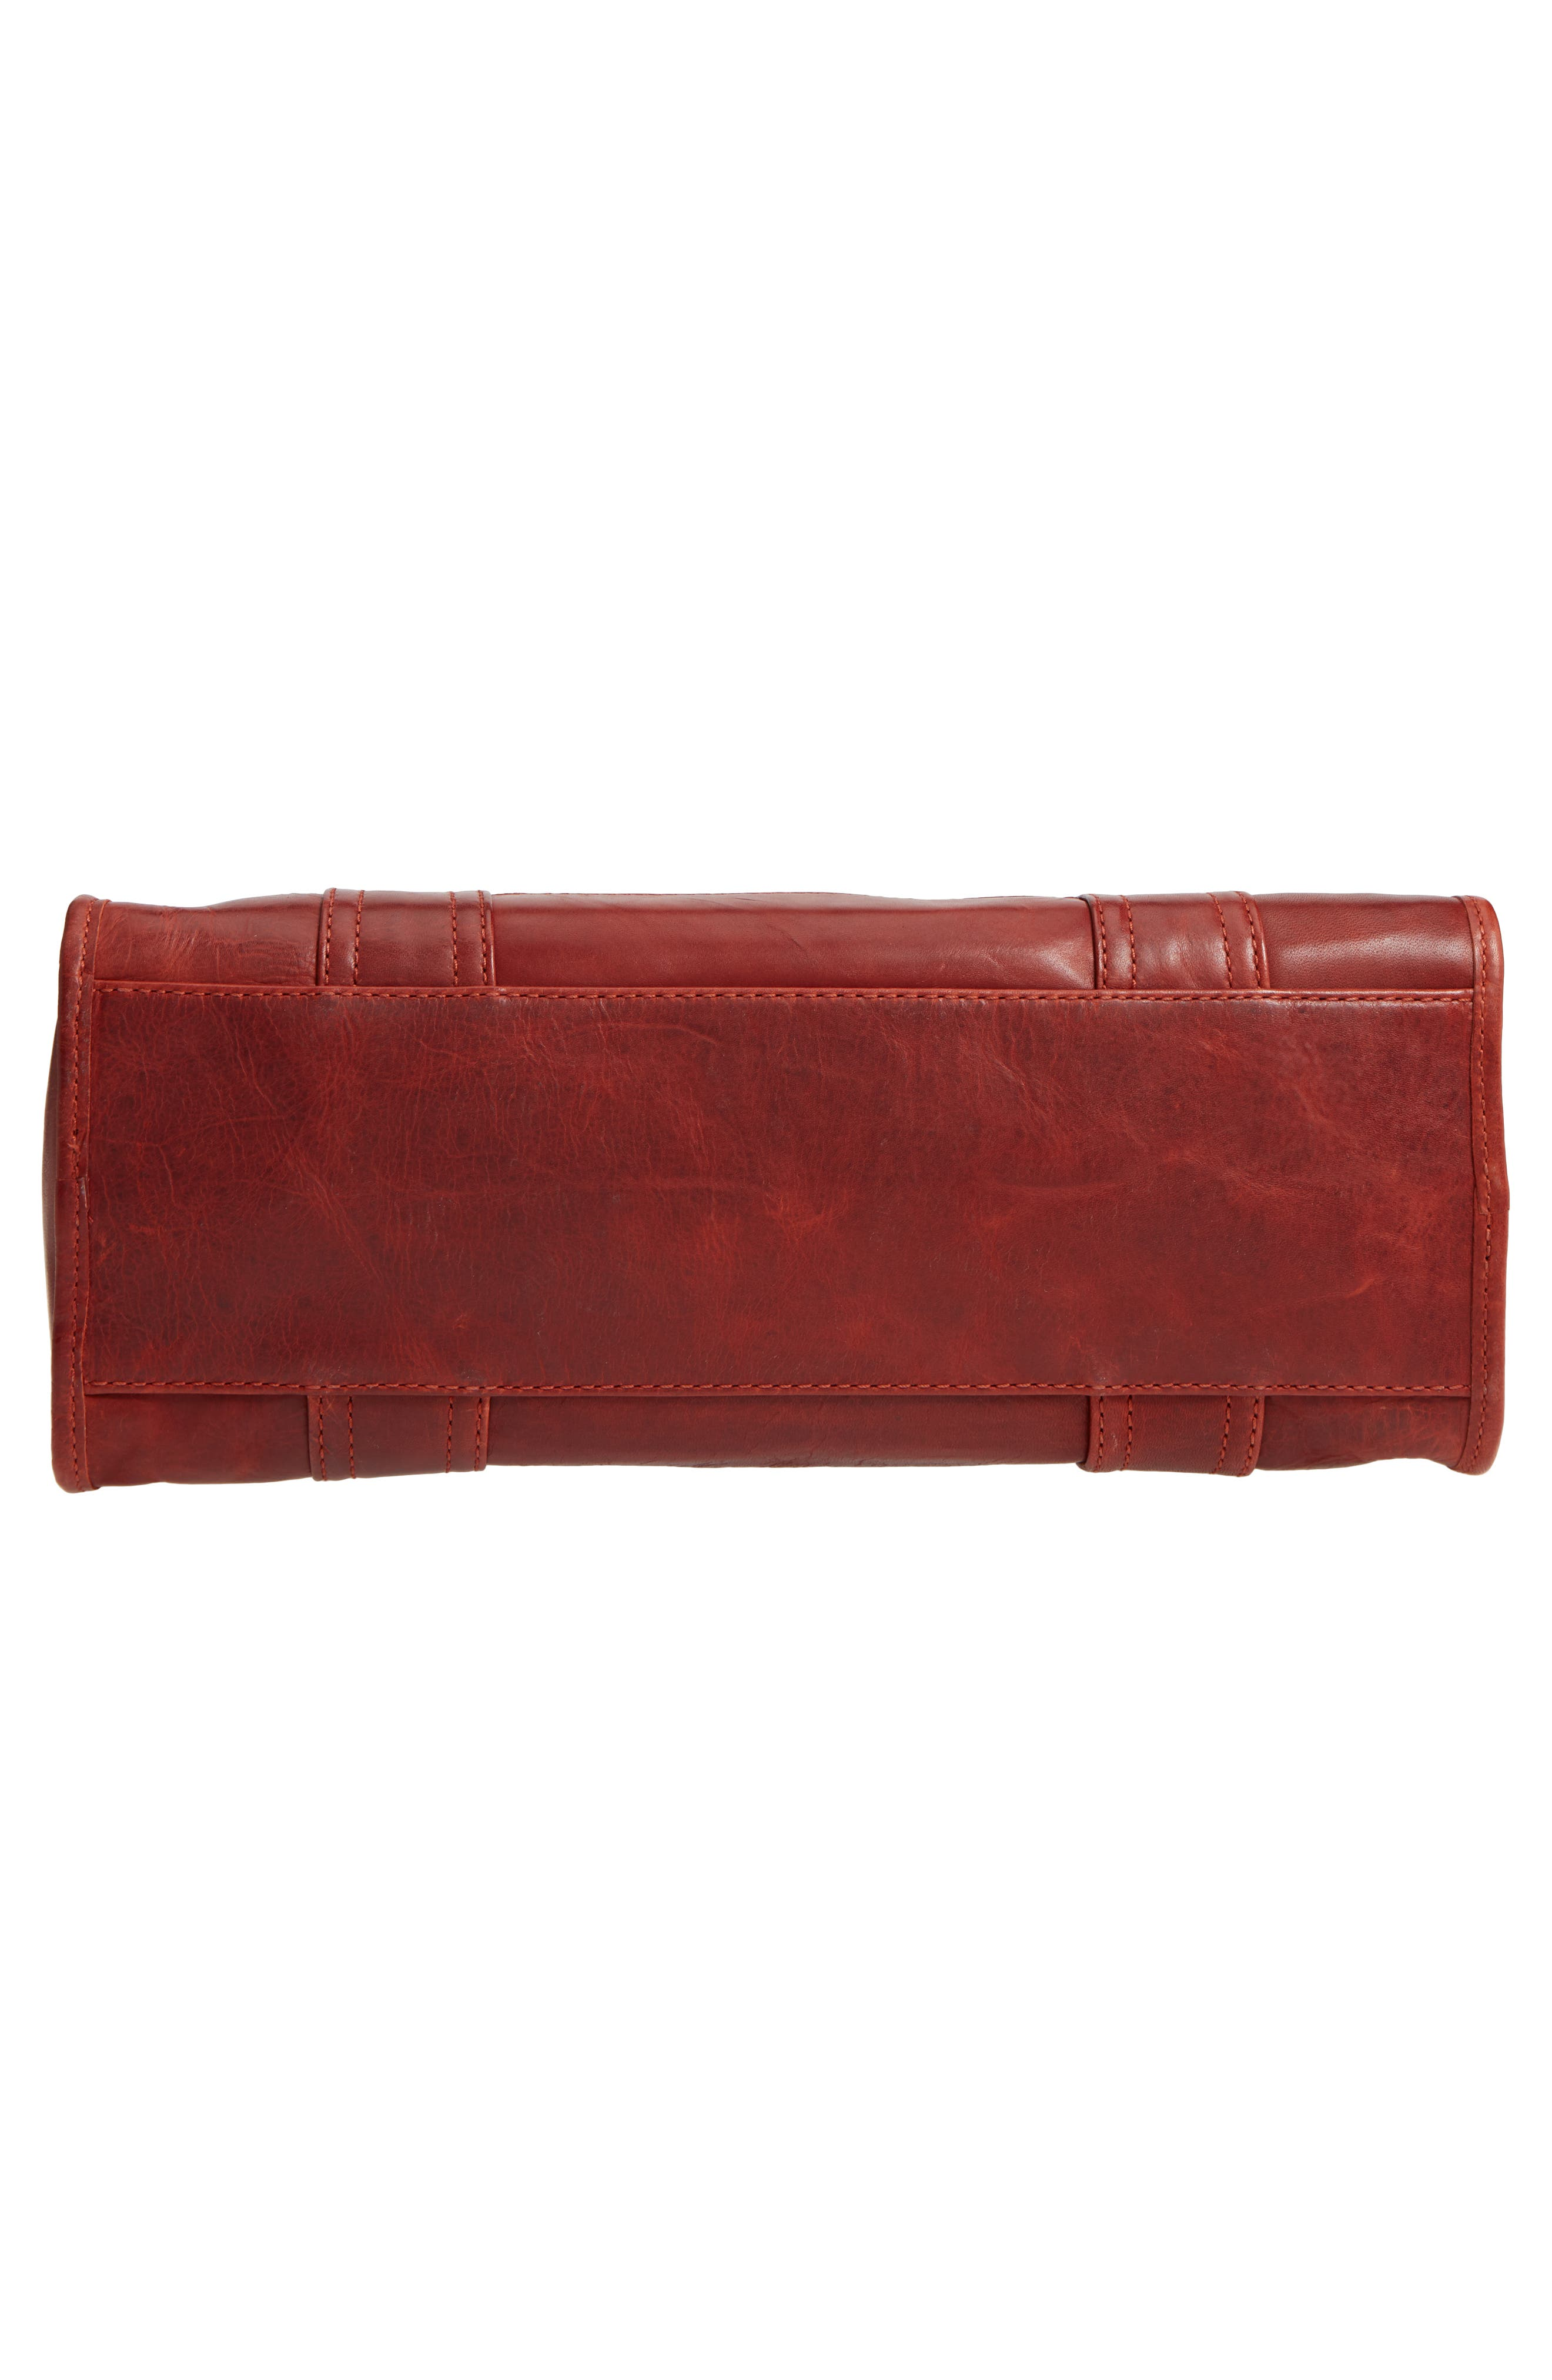 'Melissa' Washed Leather Satchel,                             Alternate thumbnail 6, color,                             Red Clay